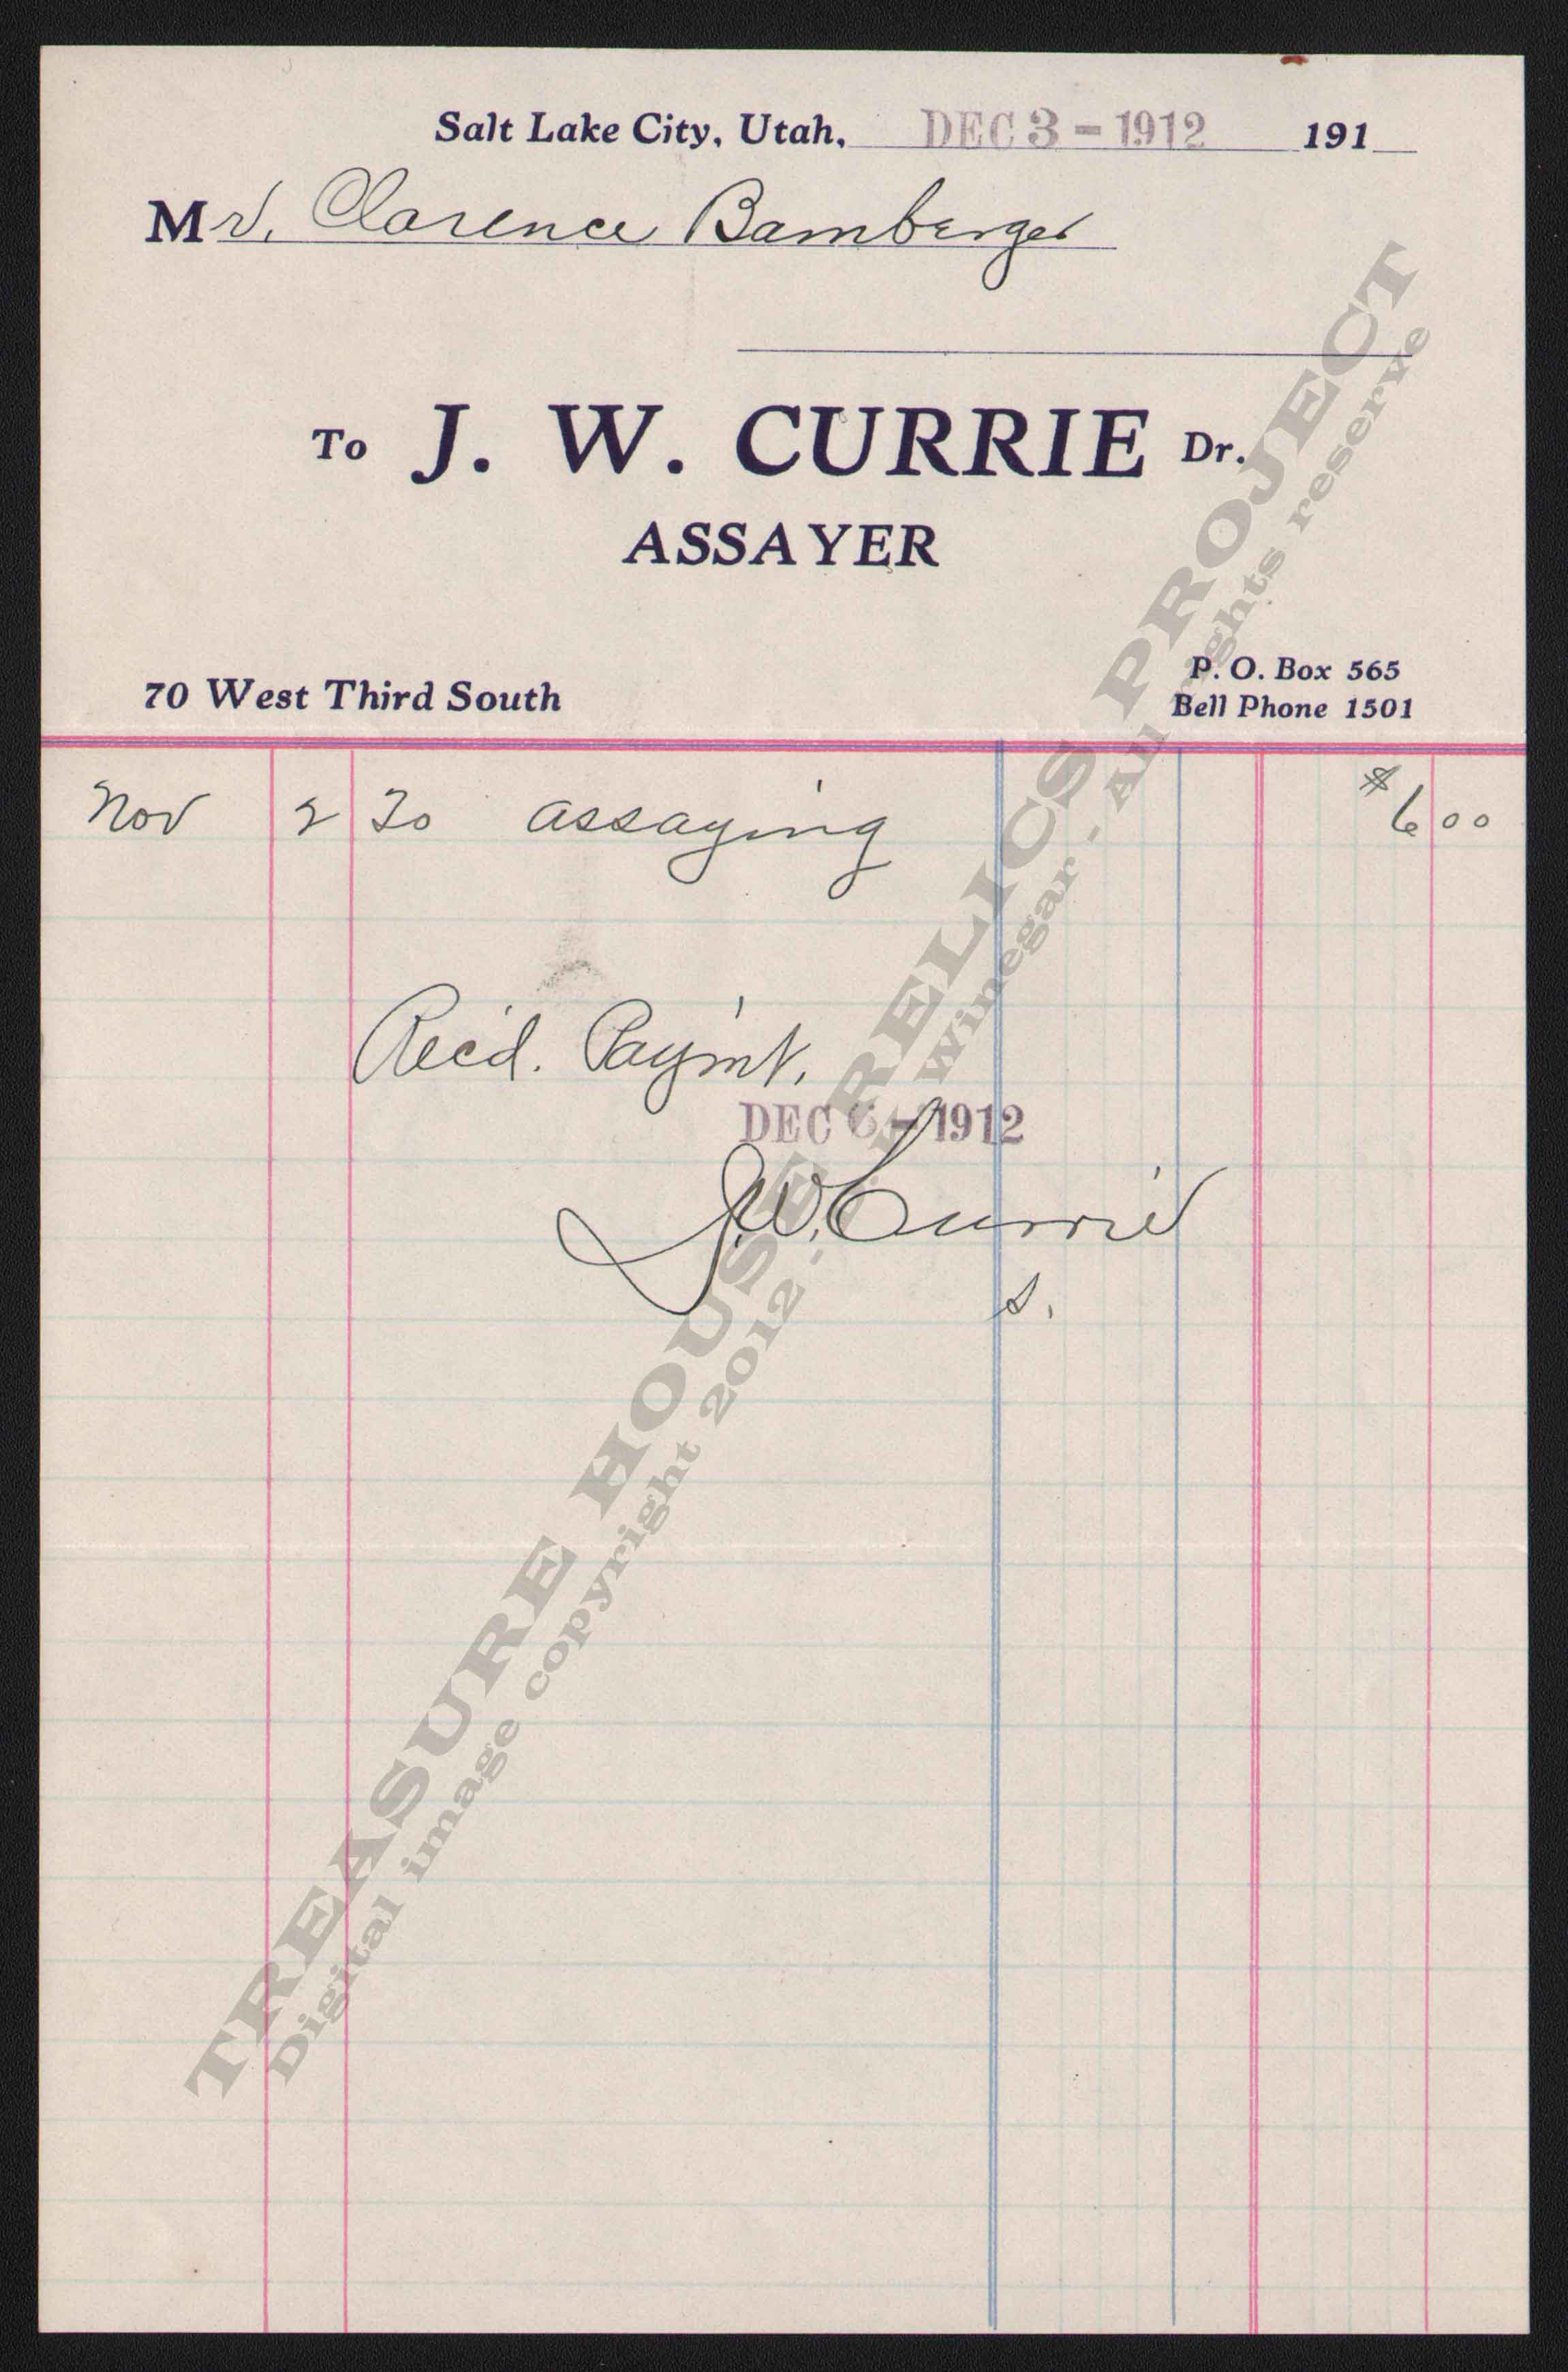 LETTERHEAD/ASSAY_J_W_CURRIE_12_3_1912_KIRK_400_CROP_EMBOSS.jpg